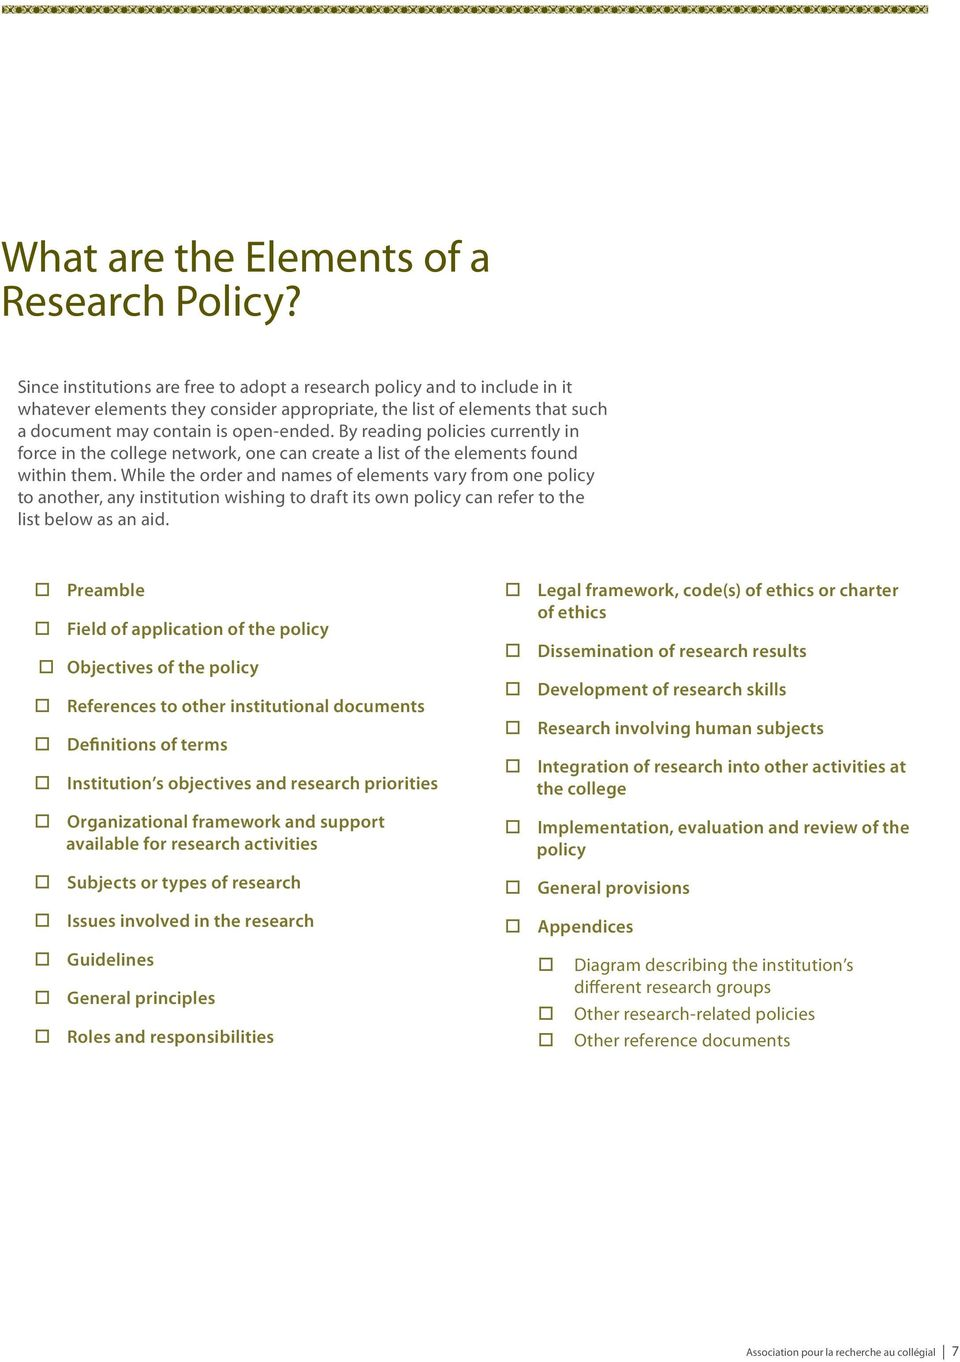 By reading policies currently in force in the college network, one can create a list of the elements found within them.